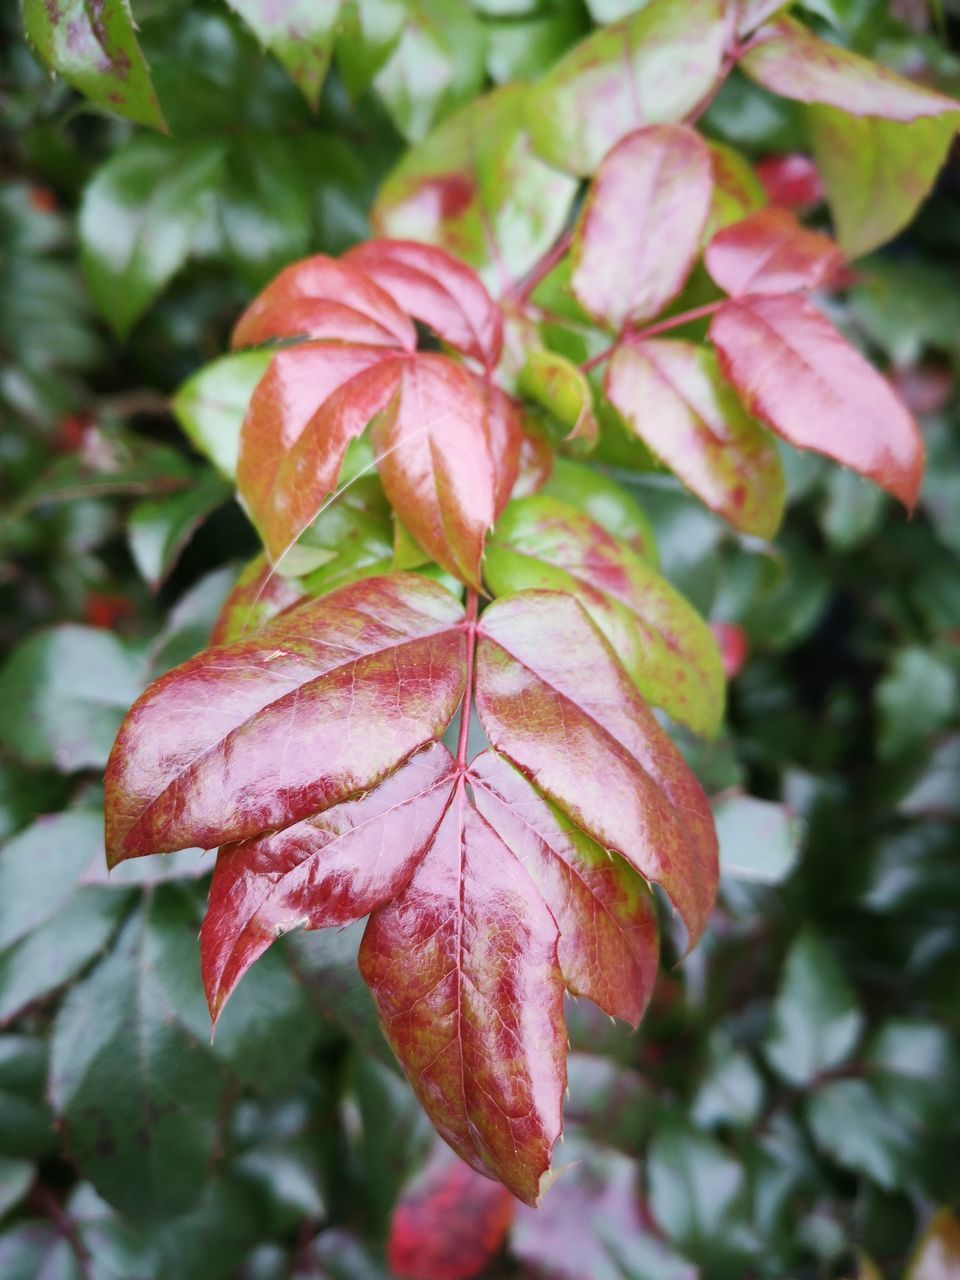 plant, plant part, leaf, beauty in nature, close-up, growth, focus on foreground, nature, vulnerability, pink color, day, fragility, no people, autumn, flower, freshness, flowering plant, outdoors, change, red, leaves, flower head, maple leaf, maroon